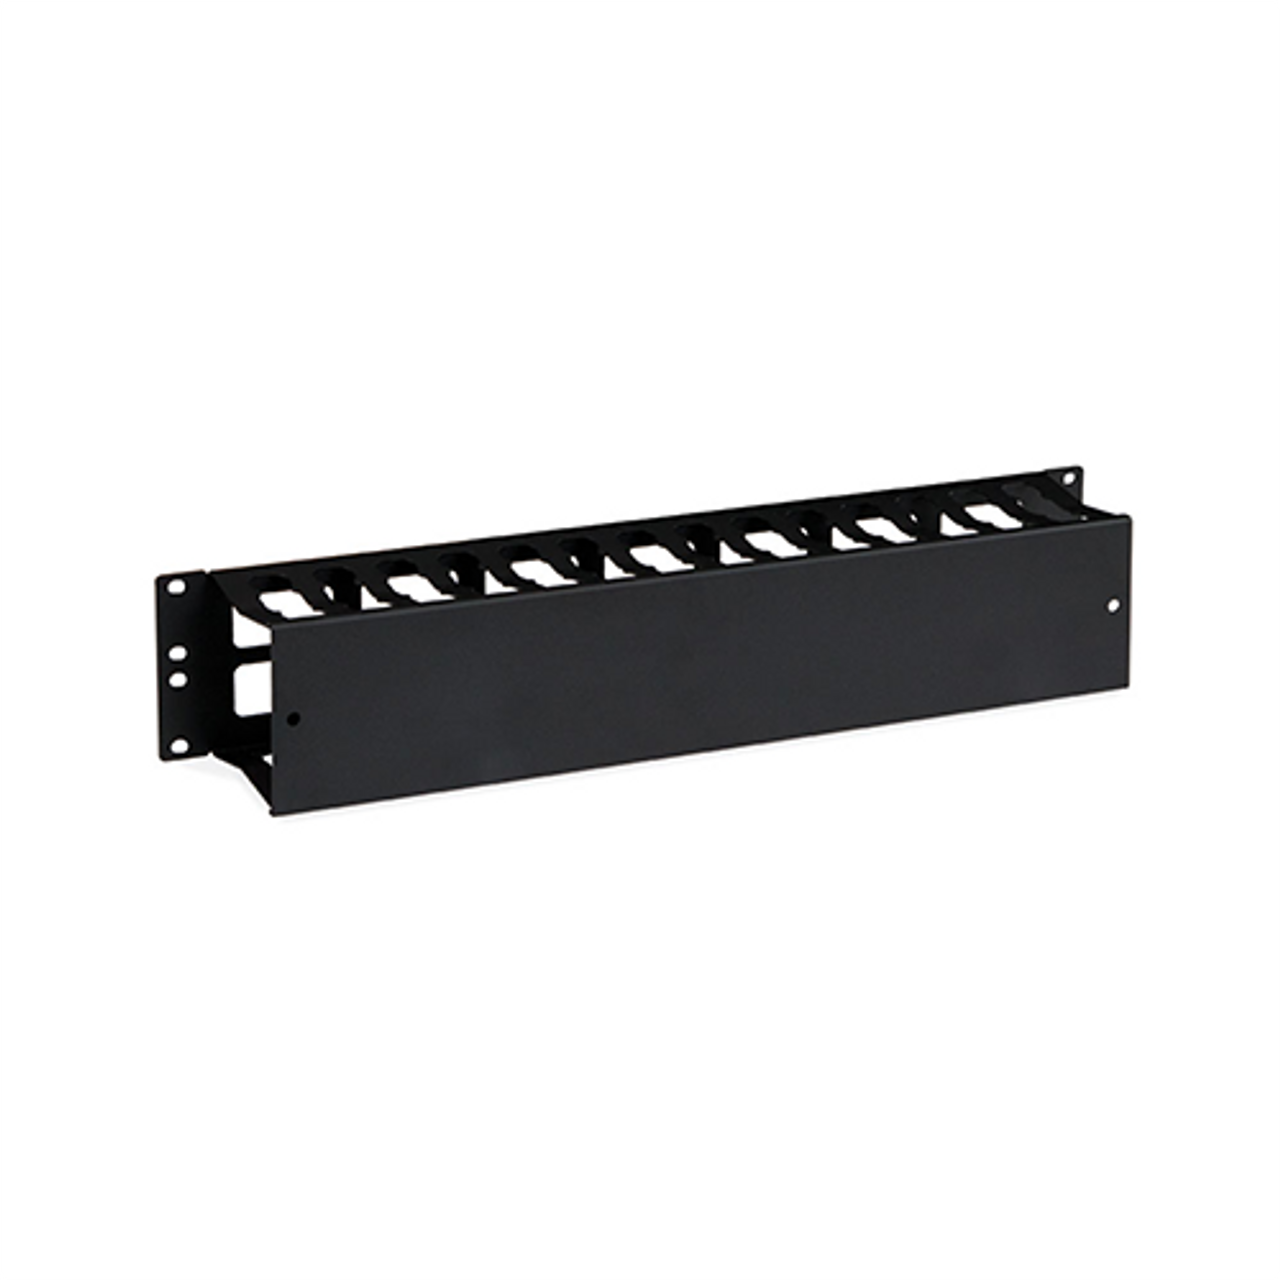 Racks, Chassis & Patch Panels Horizontal Rack Mount Cable Management Bracket 1u With 4 D-rings 4-inches Deep Rackmount Cabinets & Frames